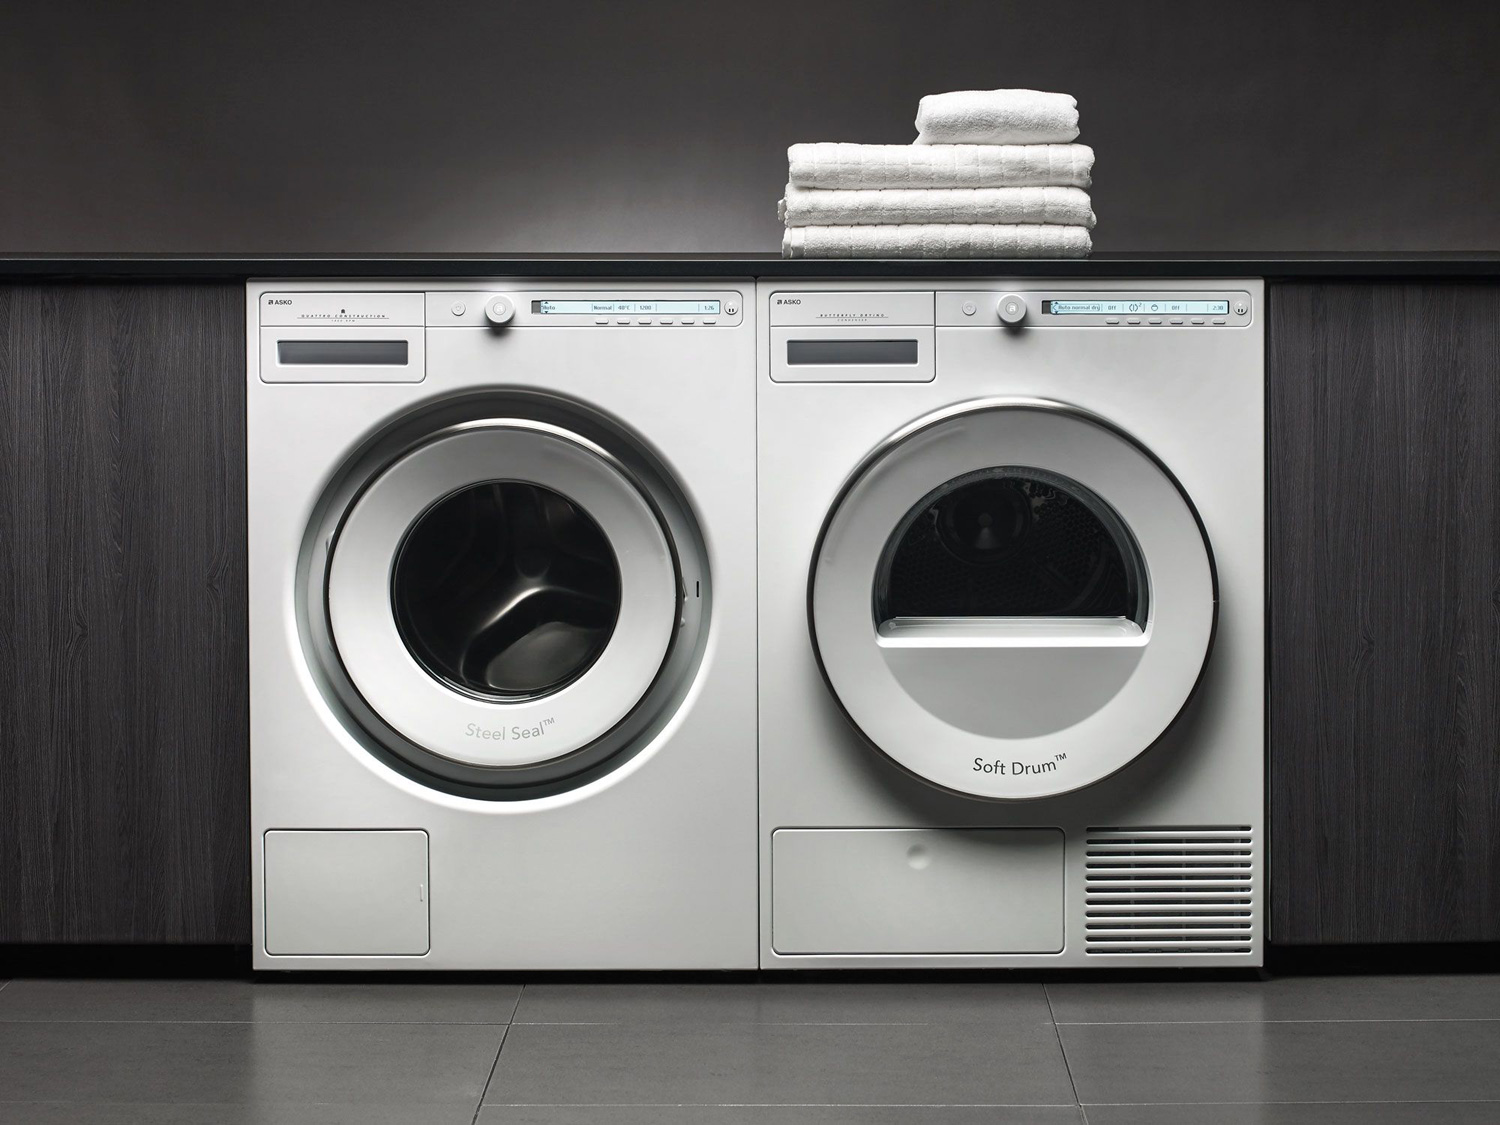 ASKO-Laundry-Washing-Machines-Classic